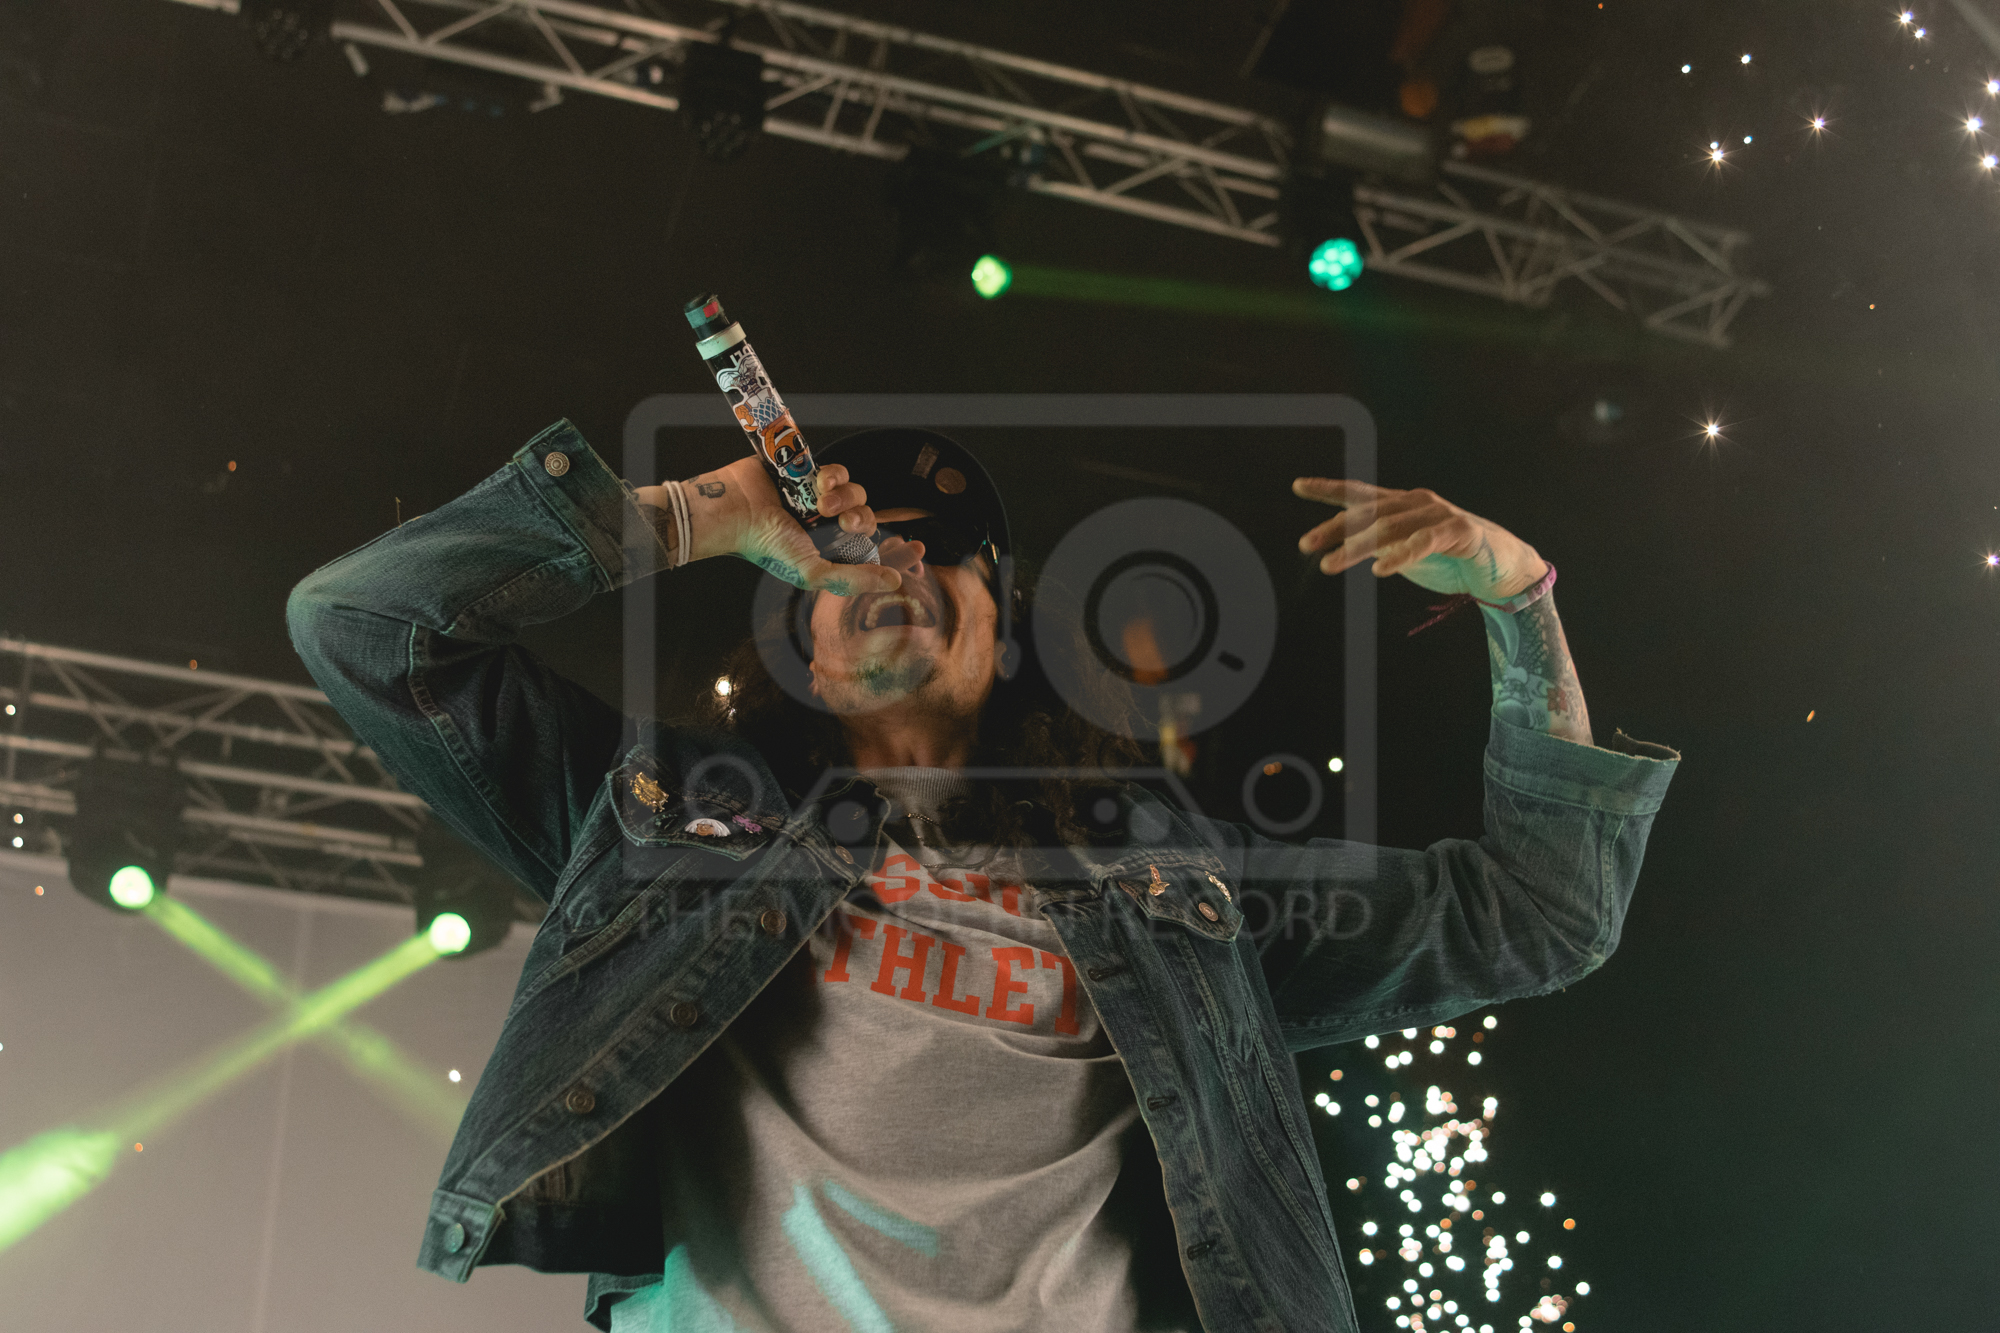 Hollywood Undead - 01.05.19 - PICTURE BY WILL GORMAN PHOTOGRAPHY-2865.JPG